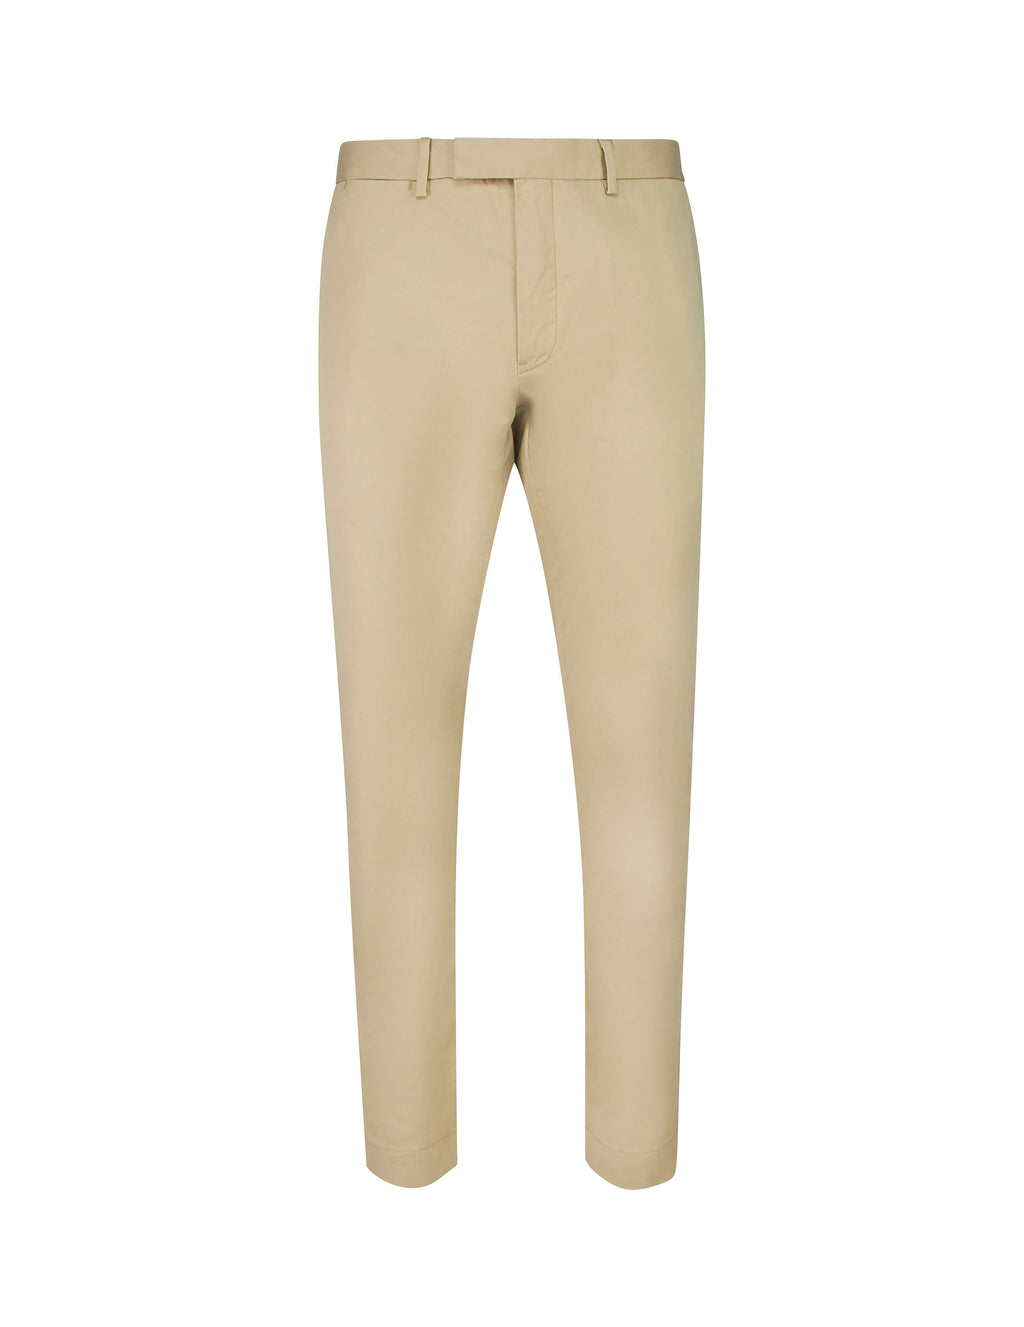 Polo Ralph Lauren Men's Giulio Fashion Beige Slim-Fit Chinos 710644990007